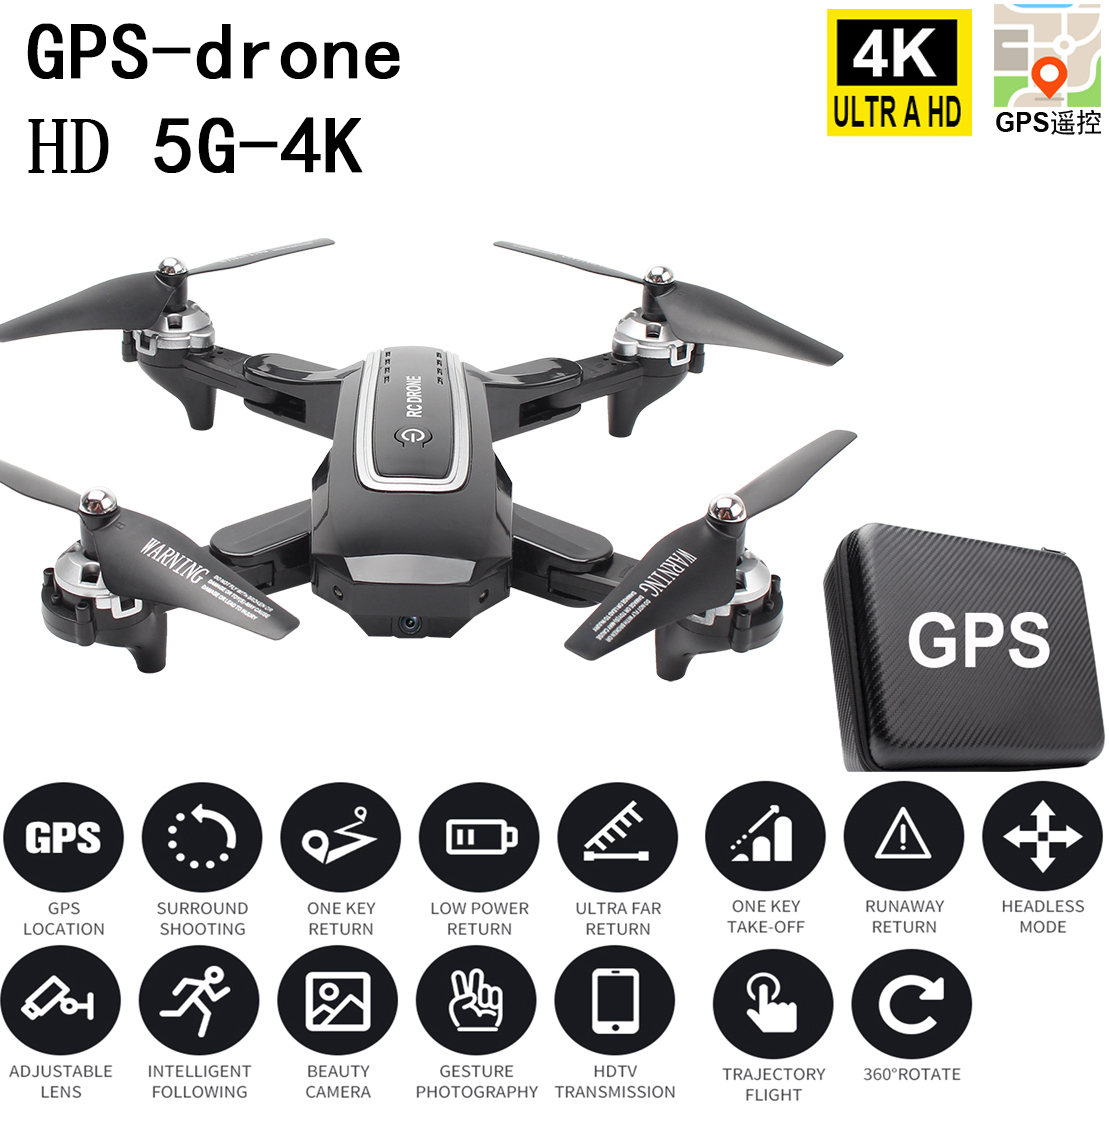 Drone Gps Follow 5G Folding Mini Drones With Camera Hd Profissional Rc Helicopter Selfie Drones Dron Quadcopter Micro 2020 Fpv